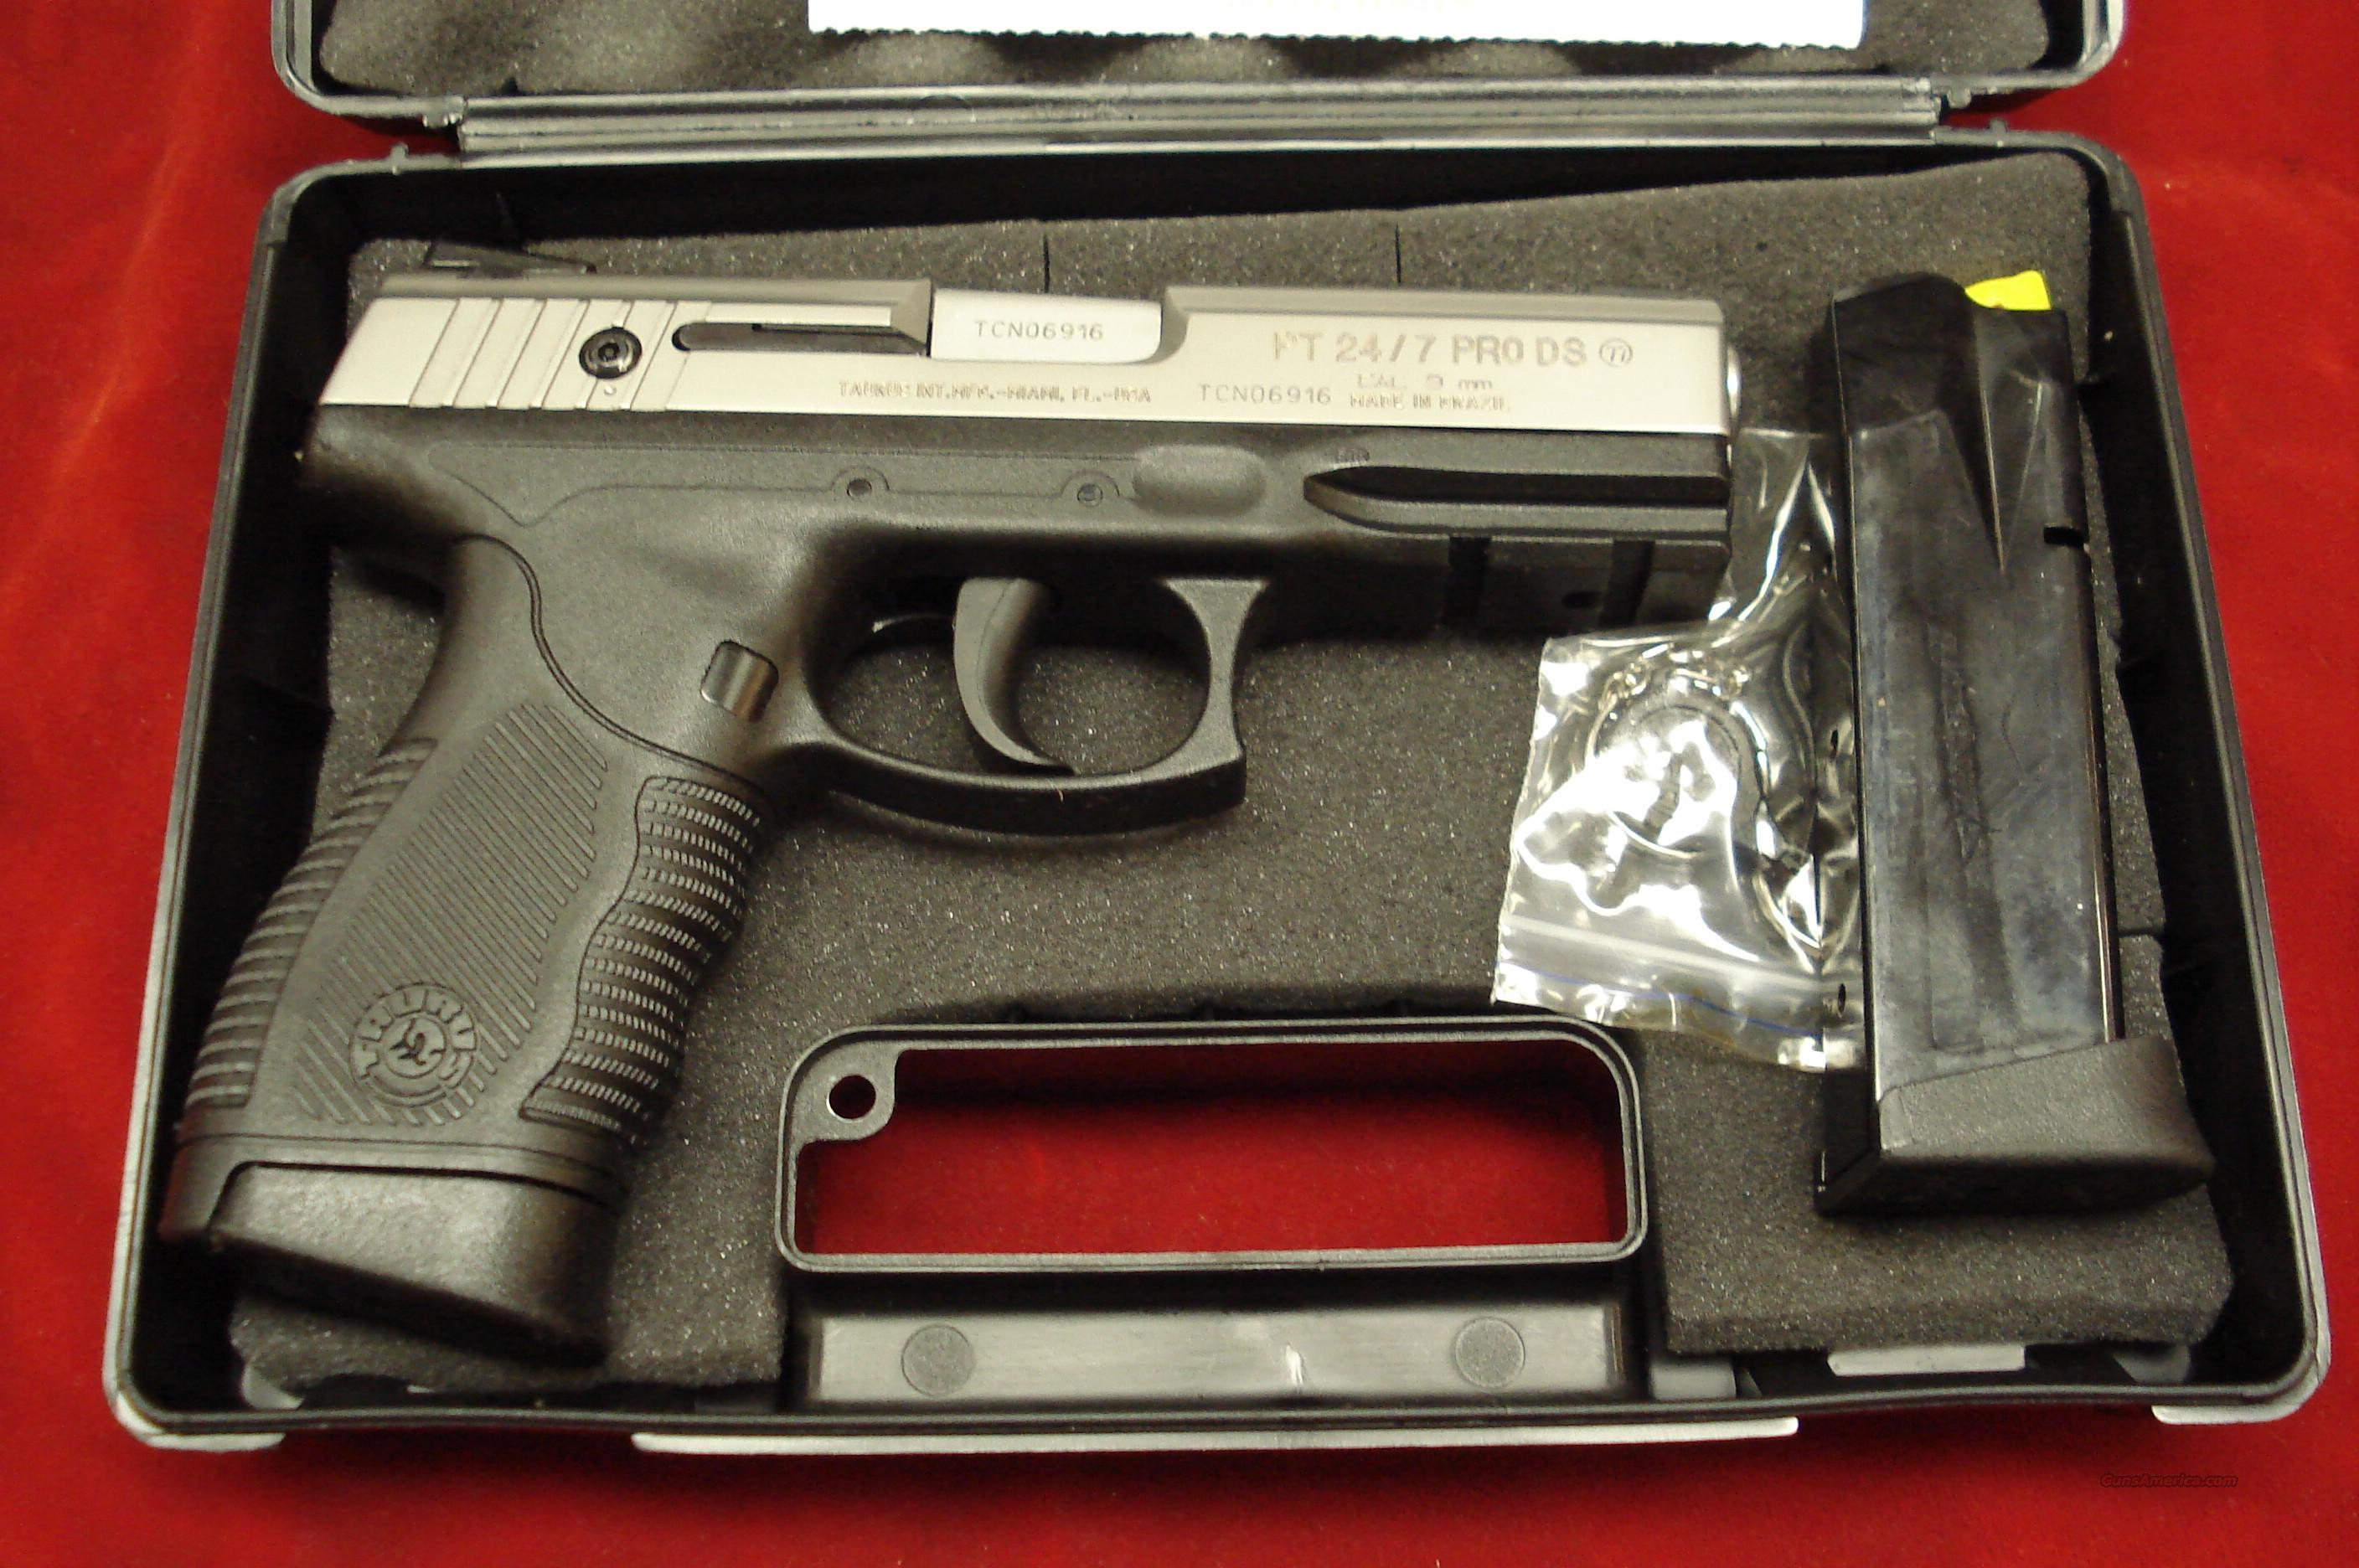 TAURUS PT24/7 PRO TITANIUM 9MM NEW IN THE BOX  Guns > Pistols > Taurus Pistols/Revolvers > Pistols > Polymer Frame